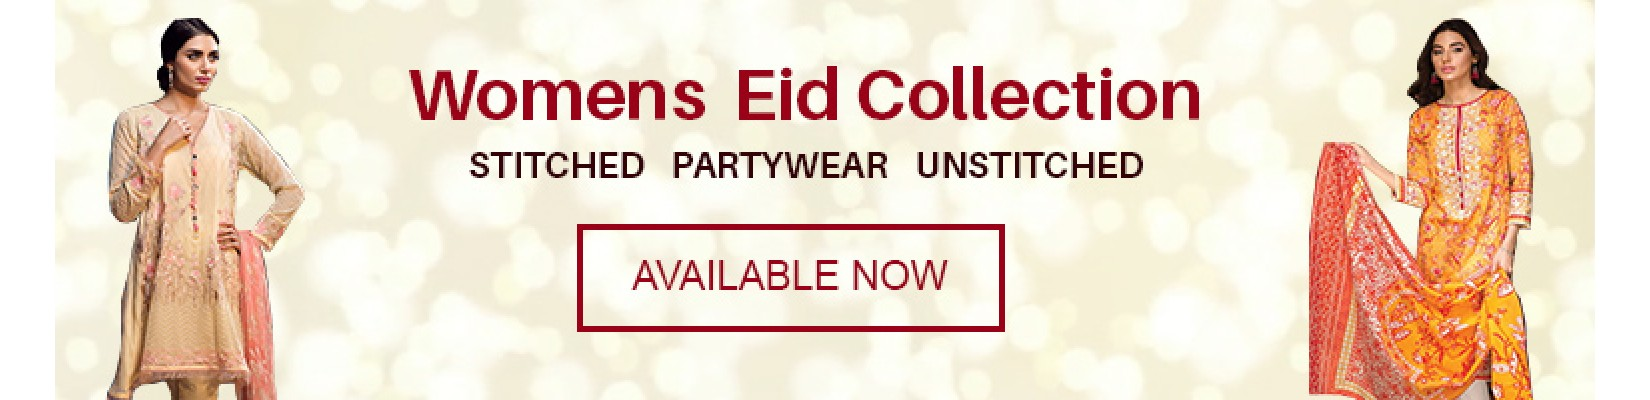 Eid 2021 Clothes for Women at Best Price in Pakistan